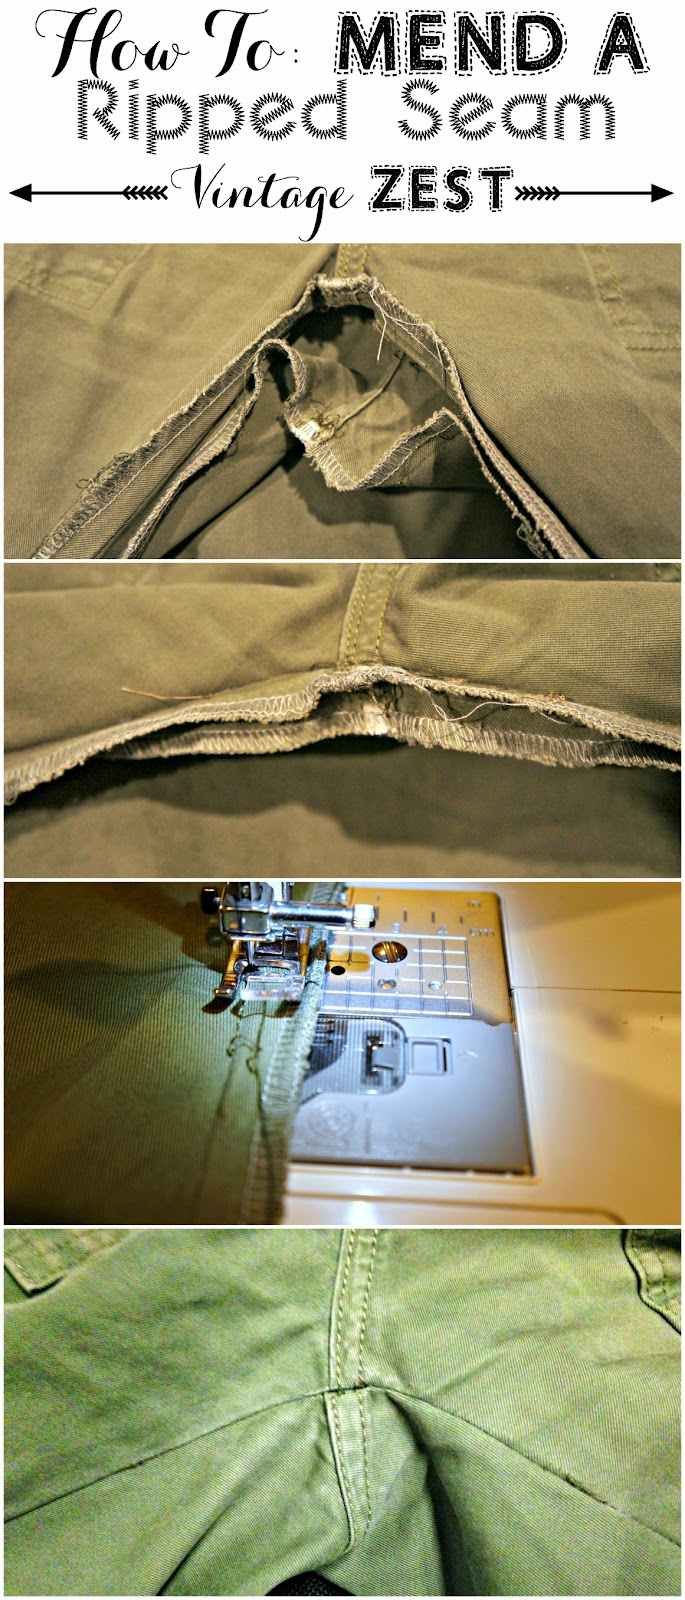 How to: Mend a Ripped Seam on Diane's Vintage Zest!